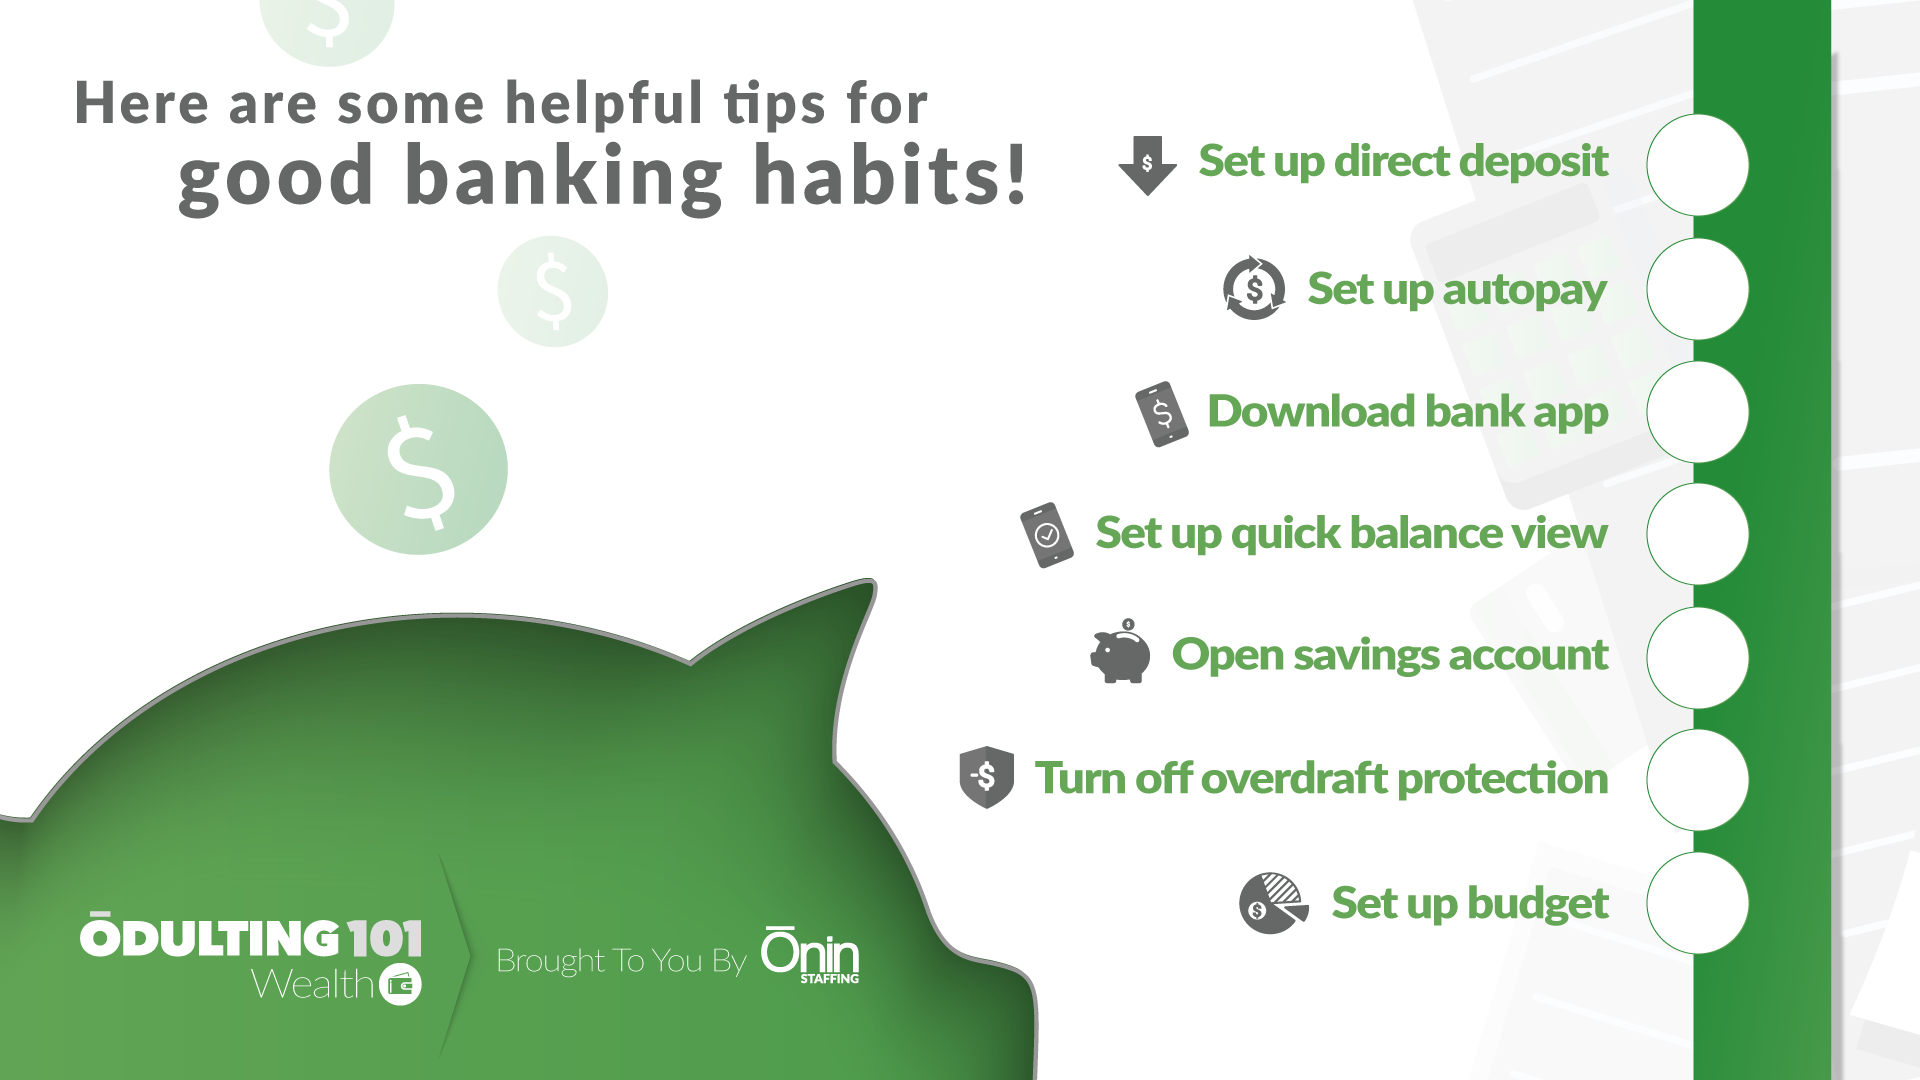 202030_IB_Banking_Habits_Infographic_DIG_Final